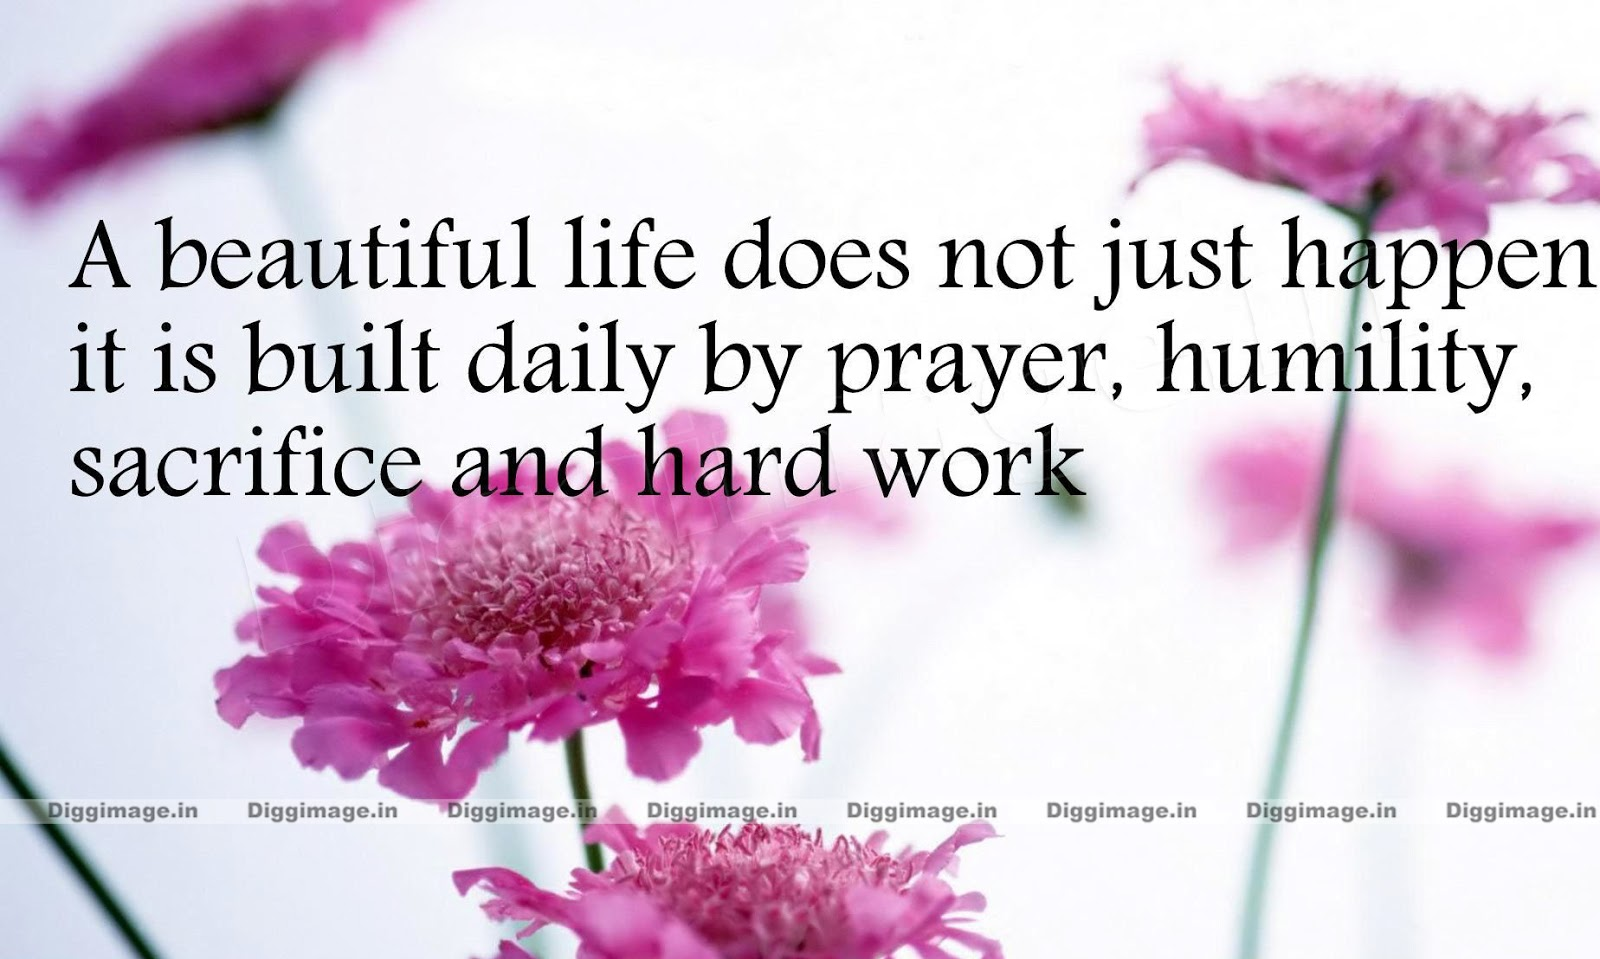 a beautiful life does not just happen it 39 s built by prayer